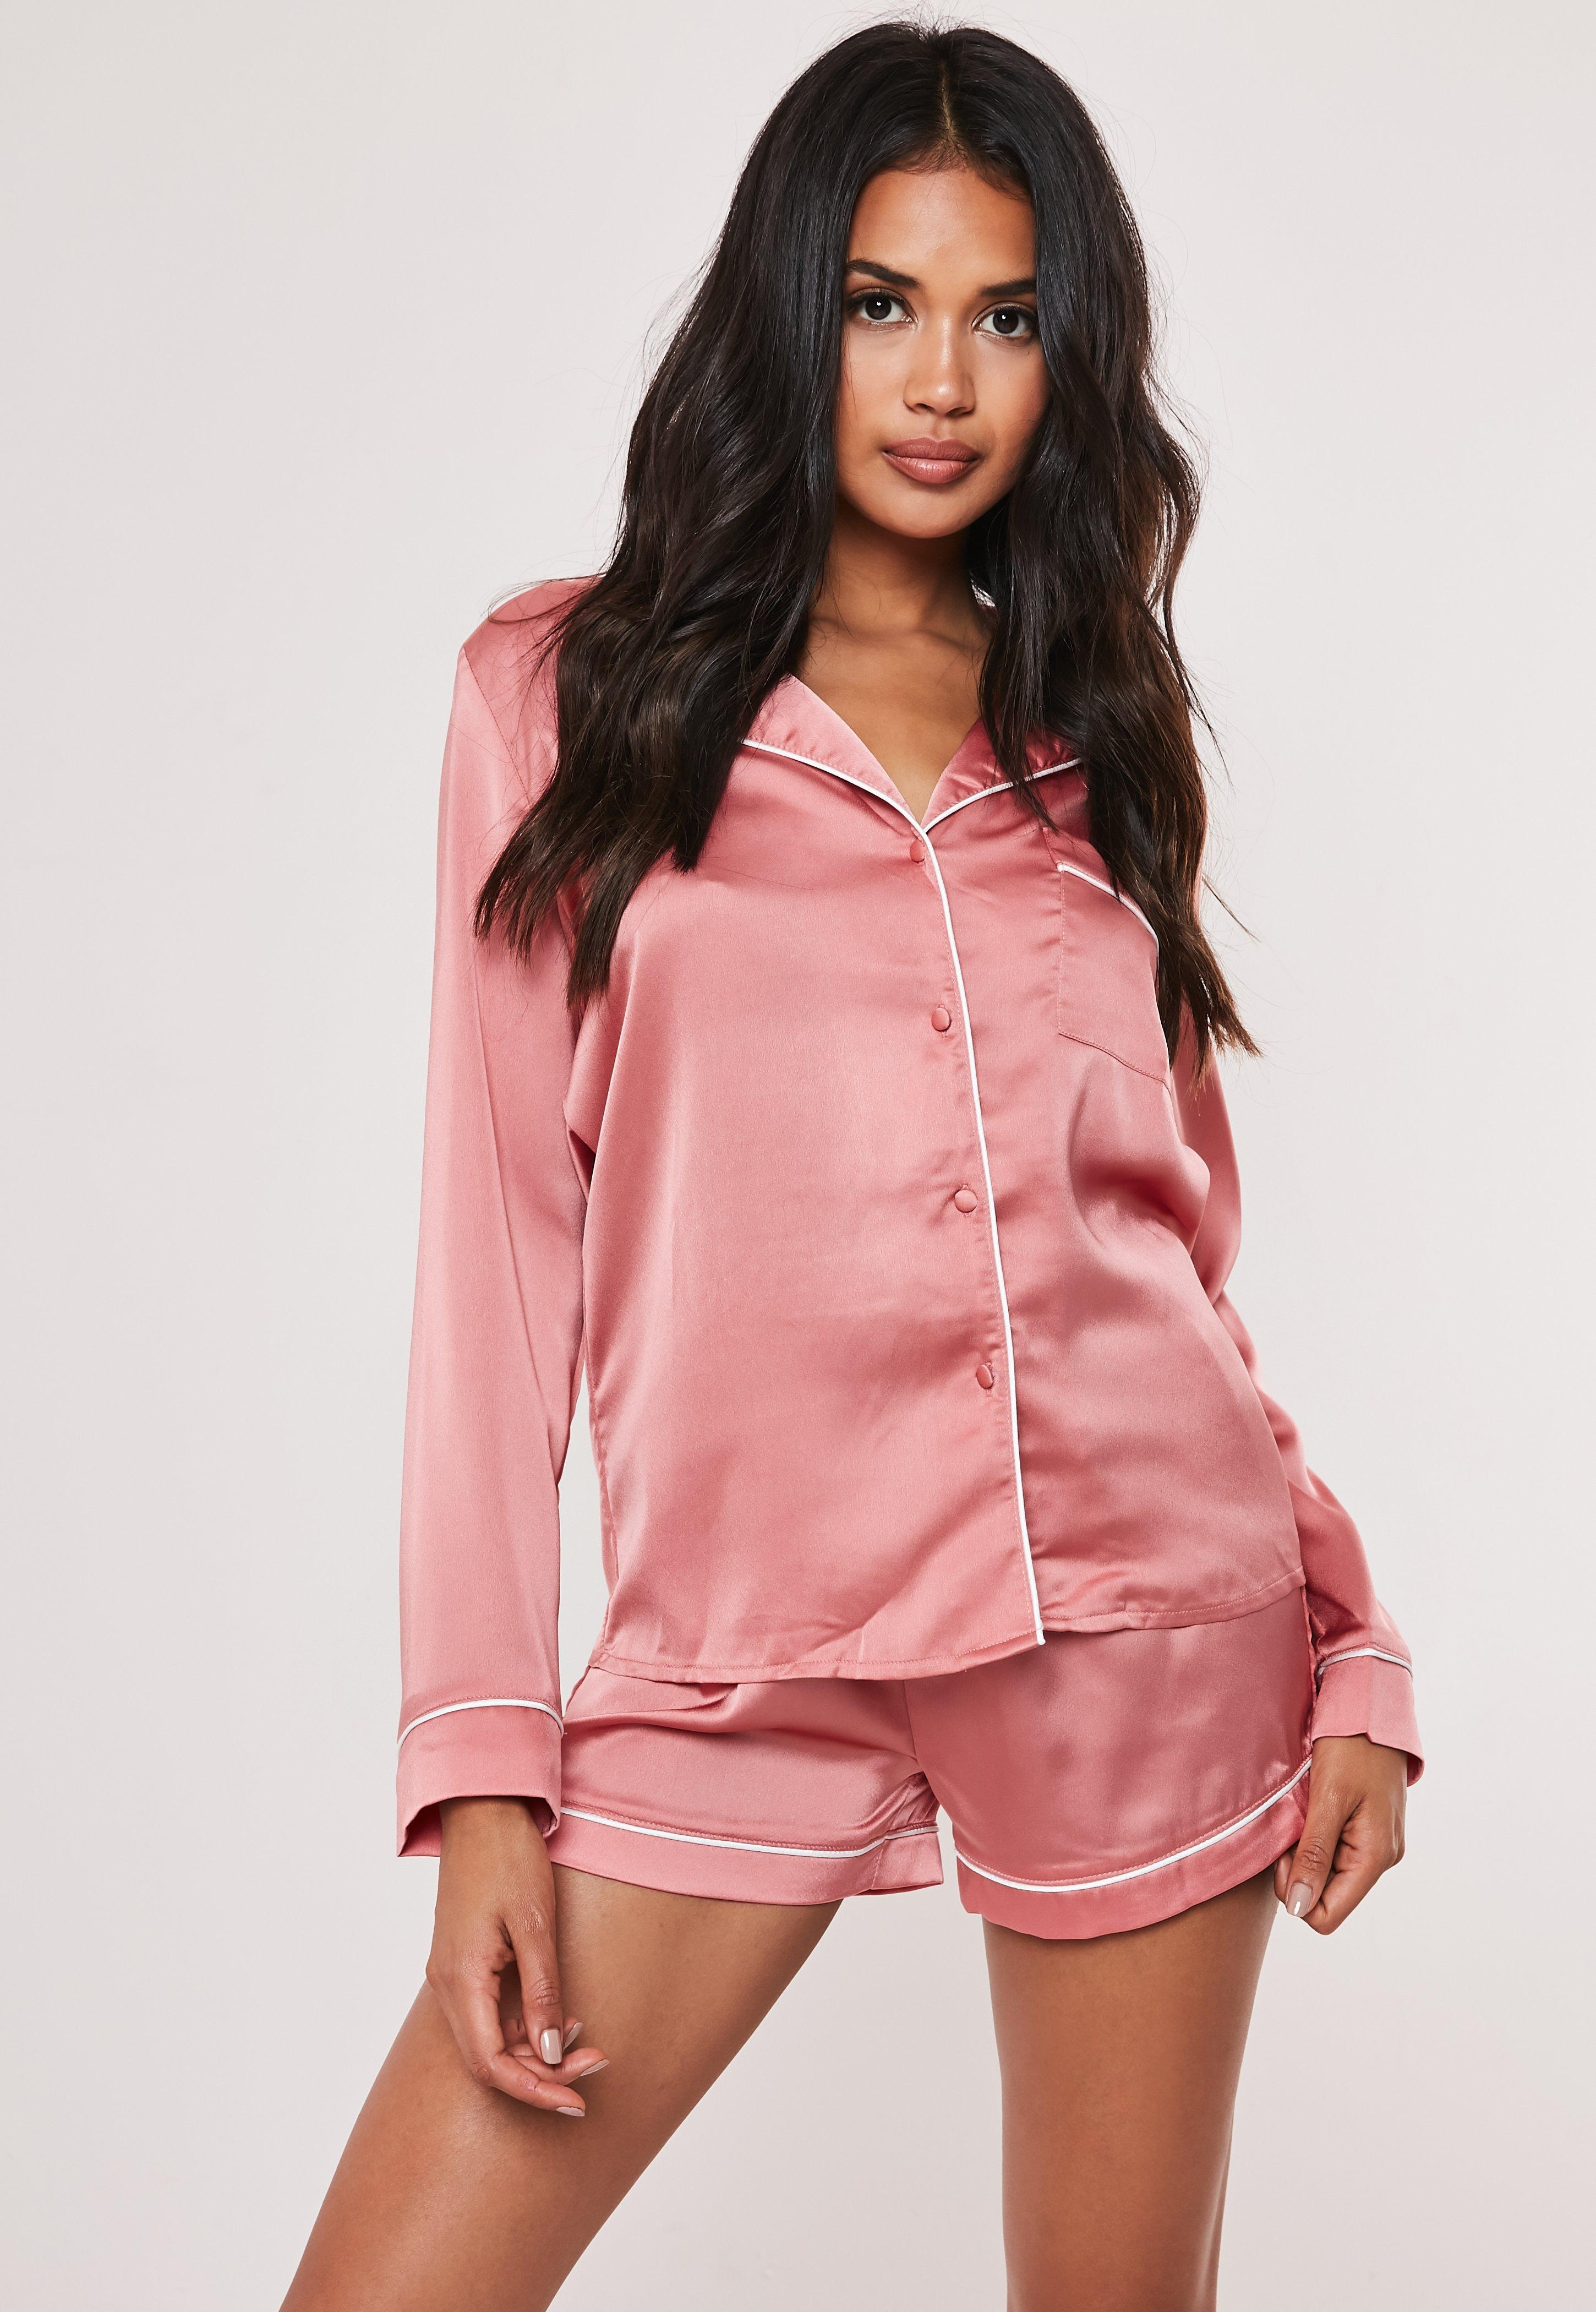 da3475799cd0 Women s Pajamas - PJ s for Women